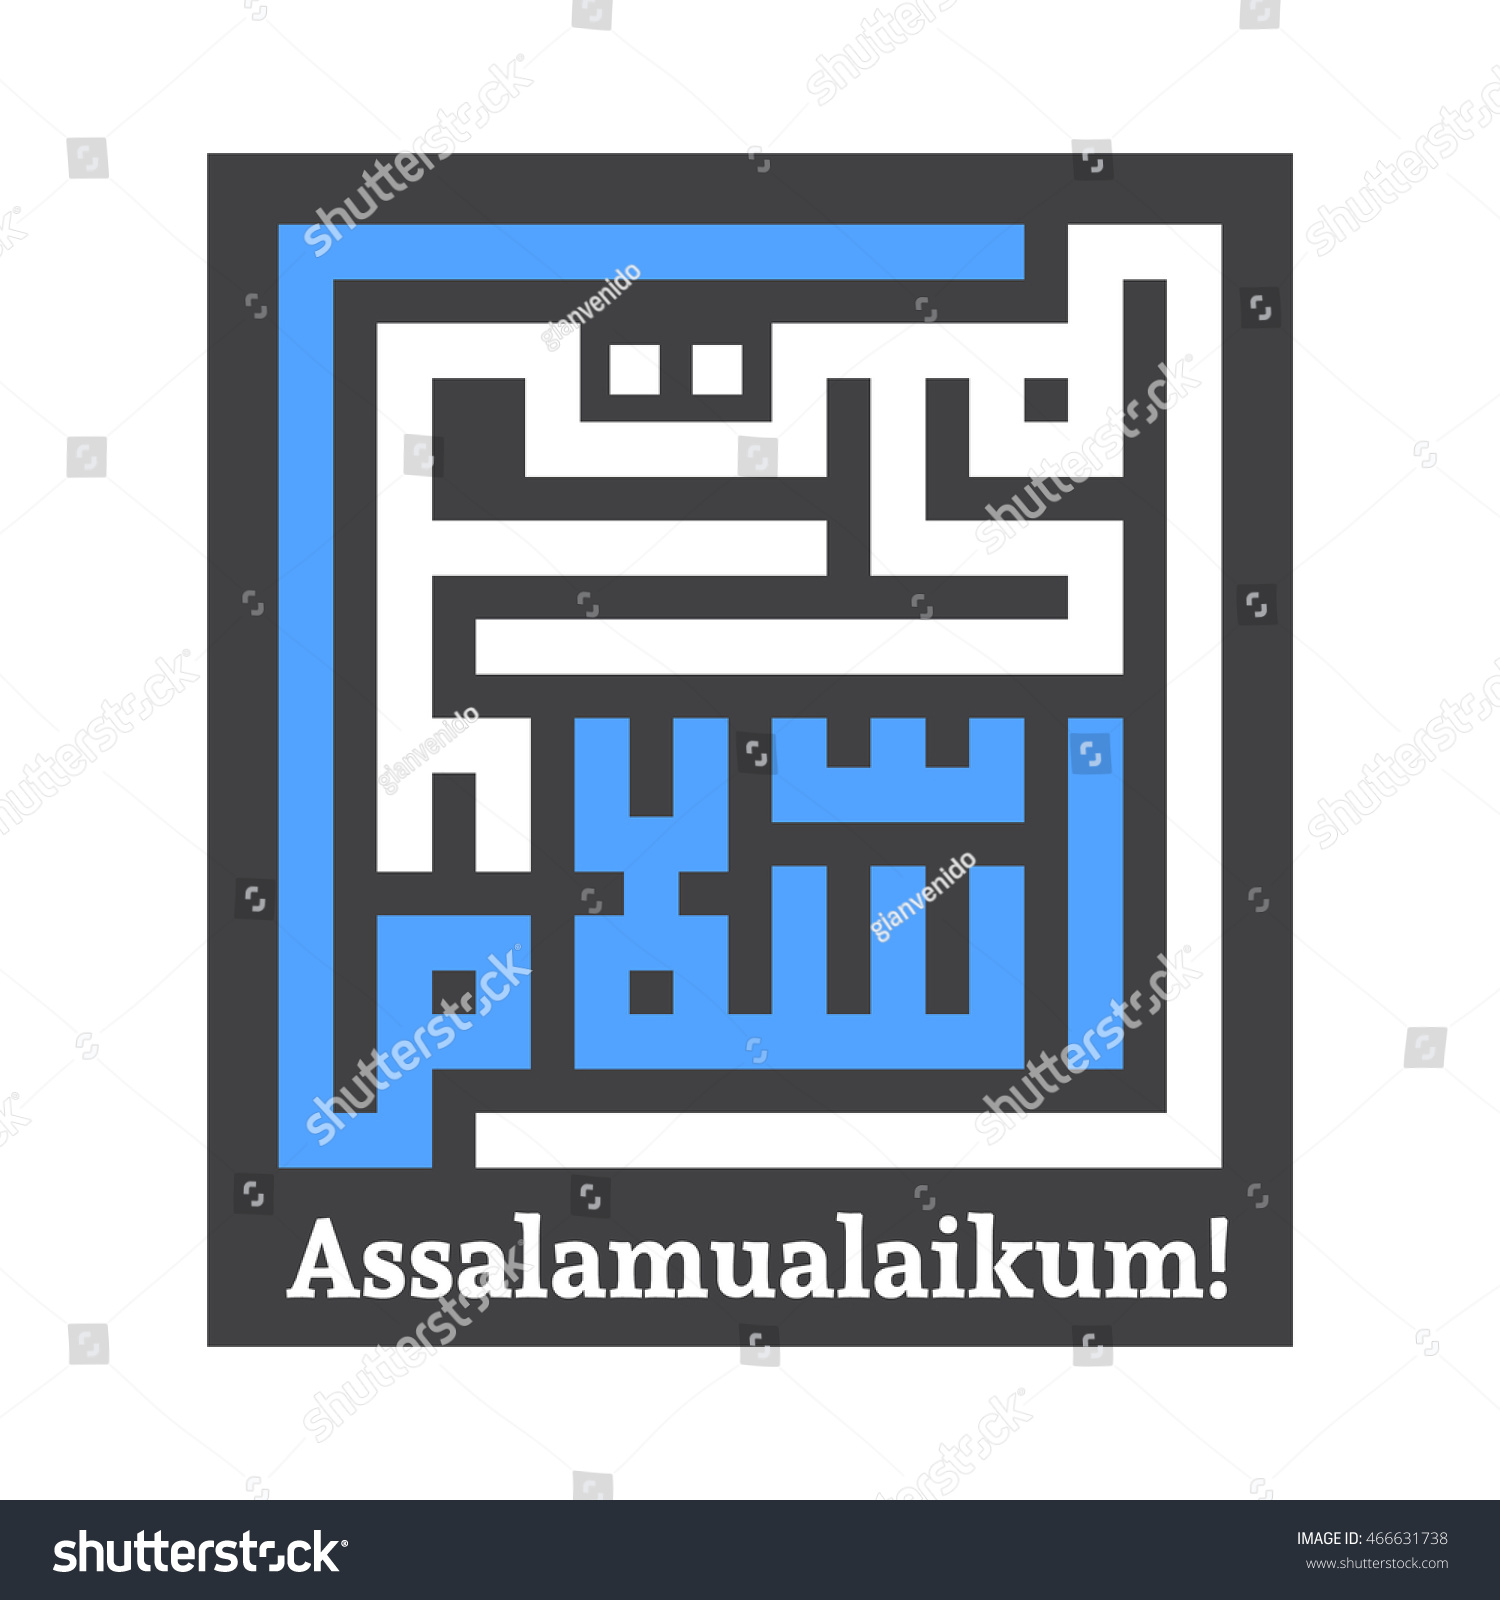 Arabic Greeting Square Kufic Style Salam Stock Vector Royalty Free